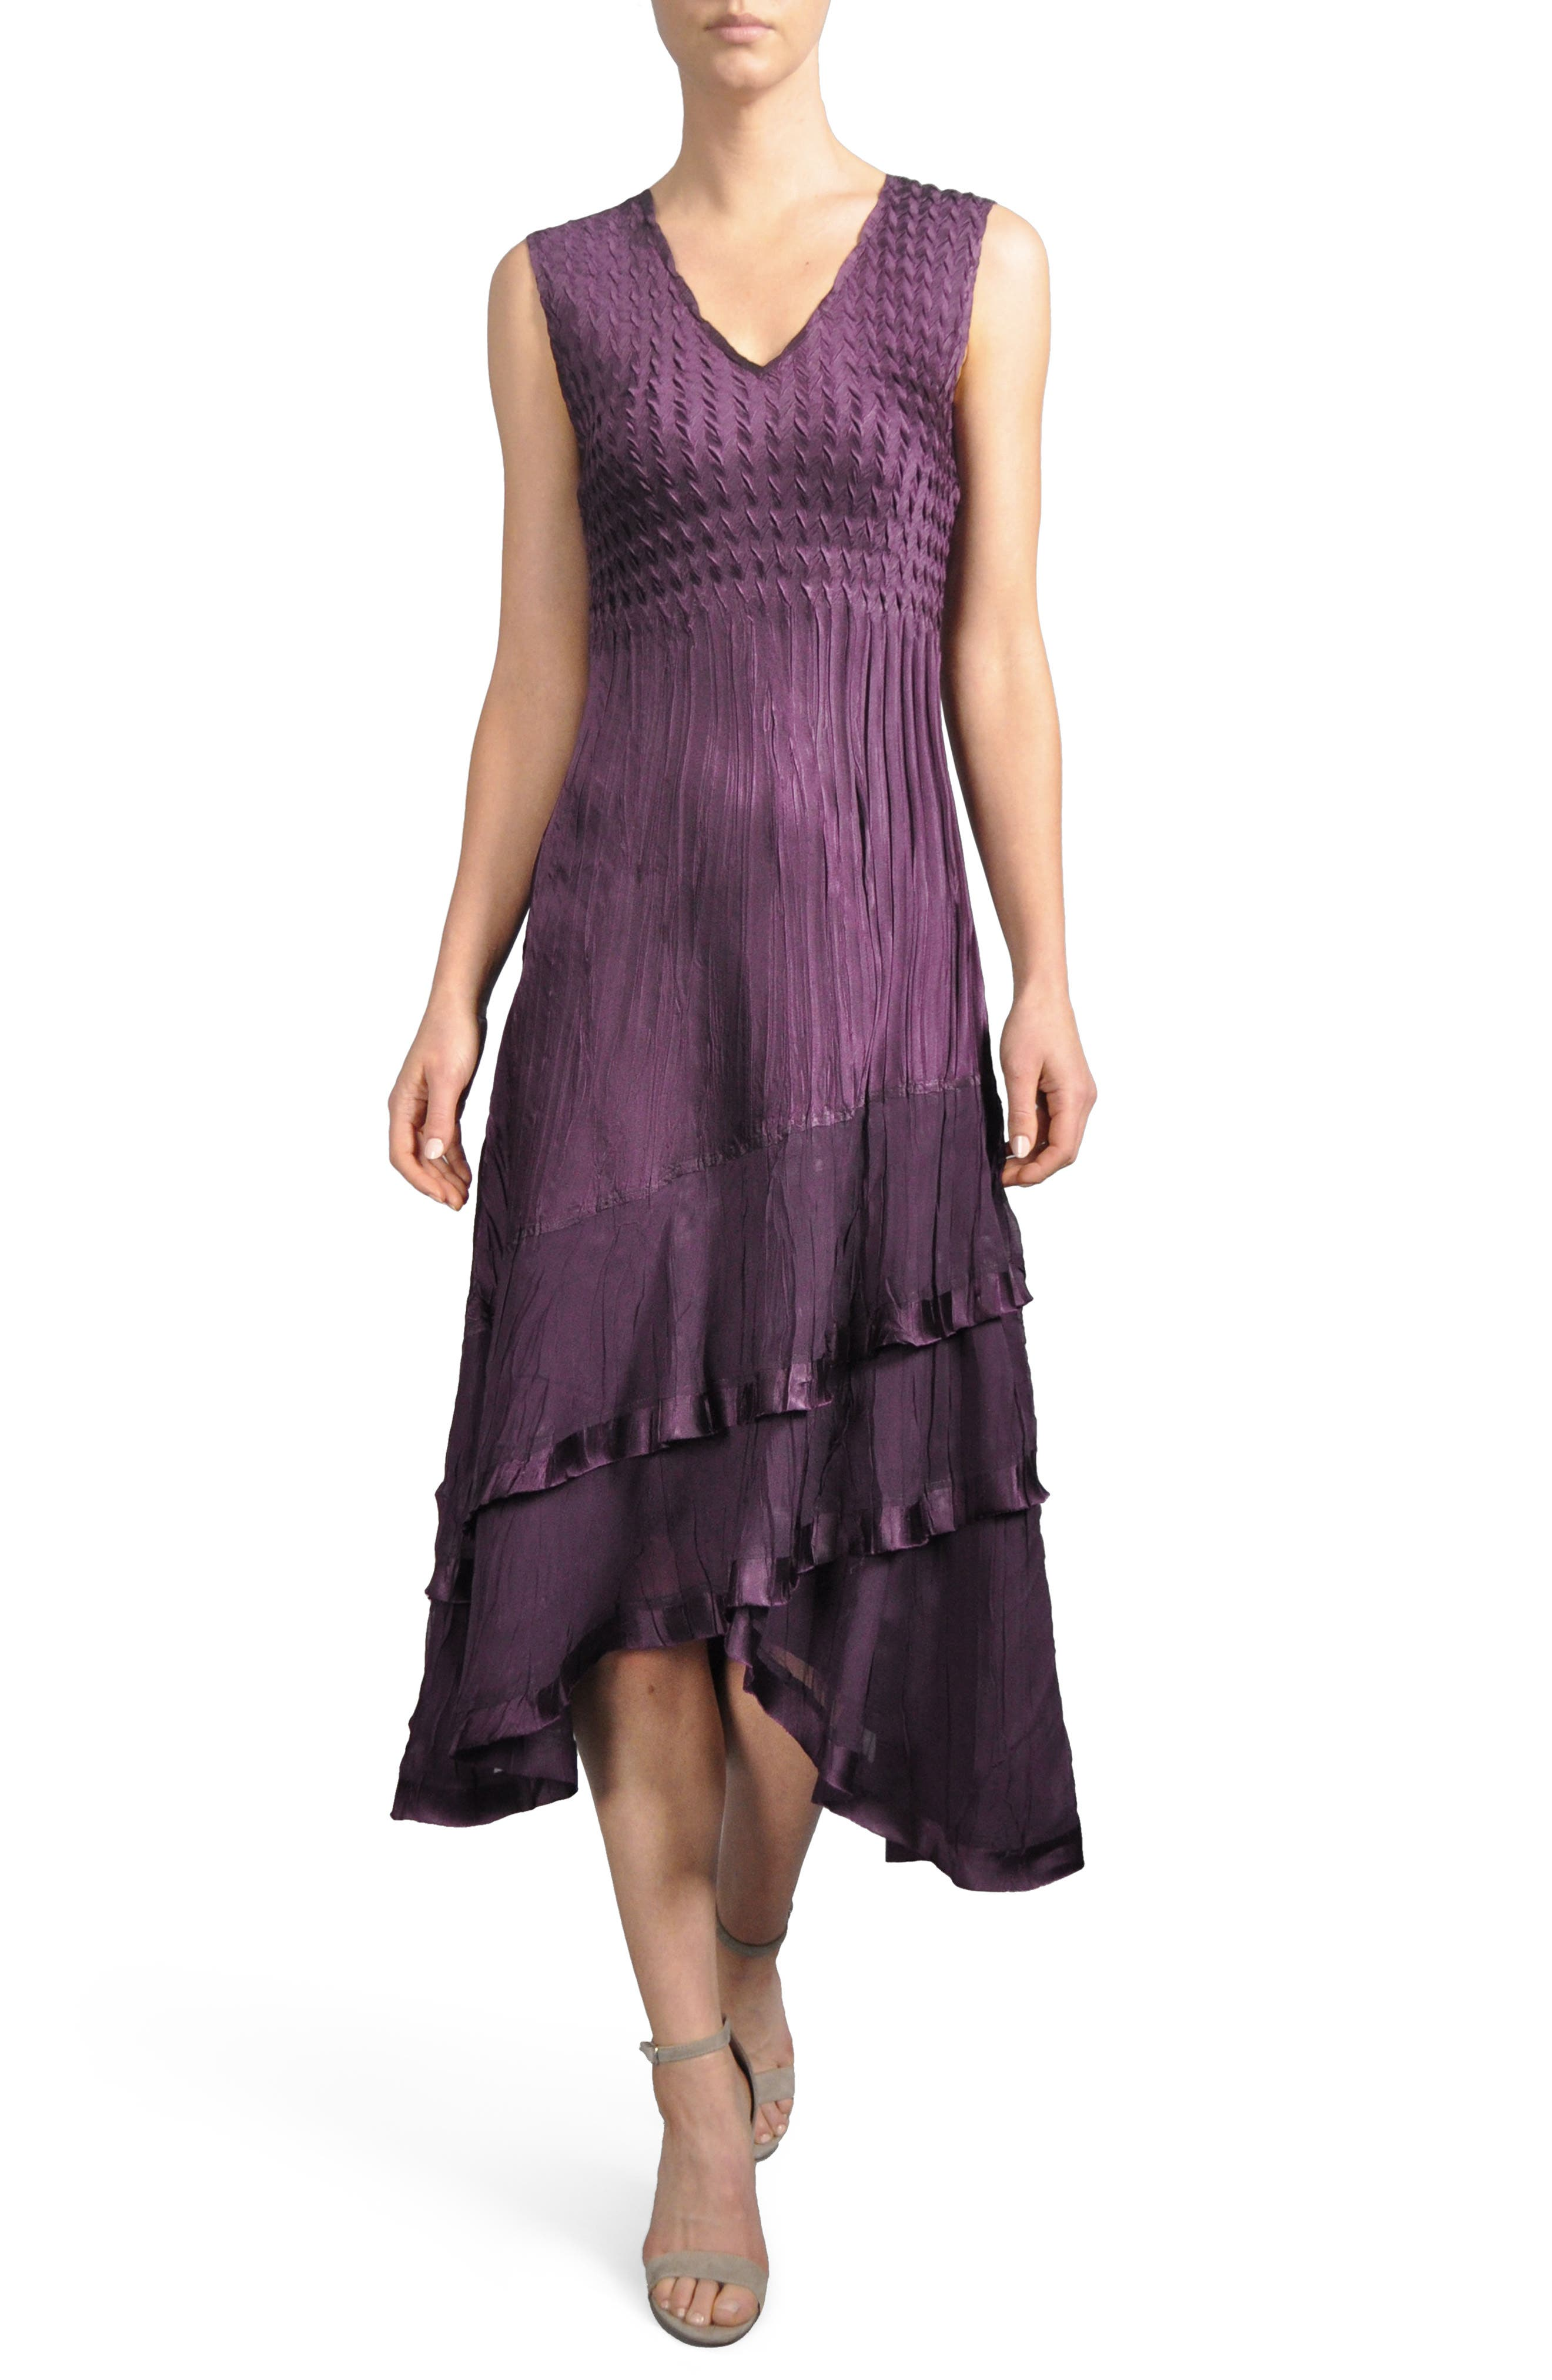 Komorov Textured Tiered Midi Dress with Jacket,                             Alternate thumbnail 2, color,                             503